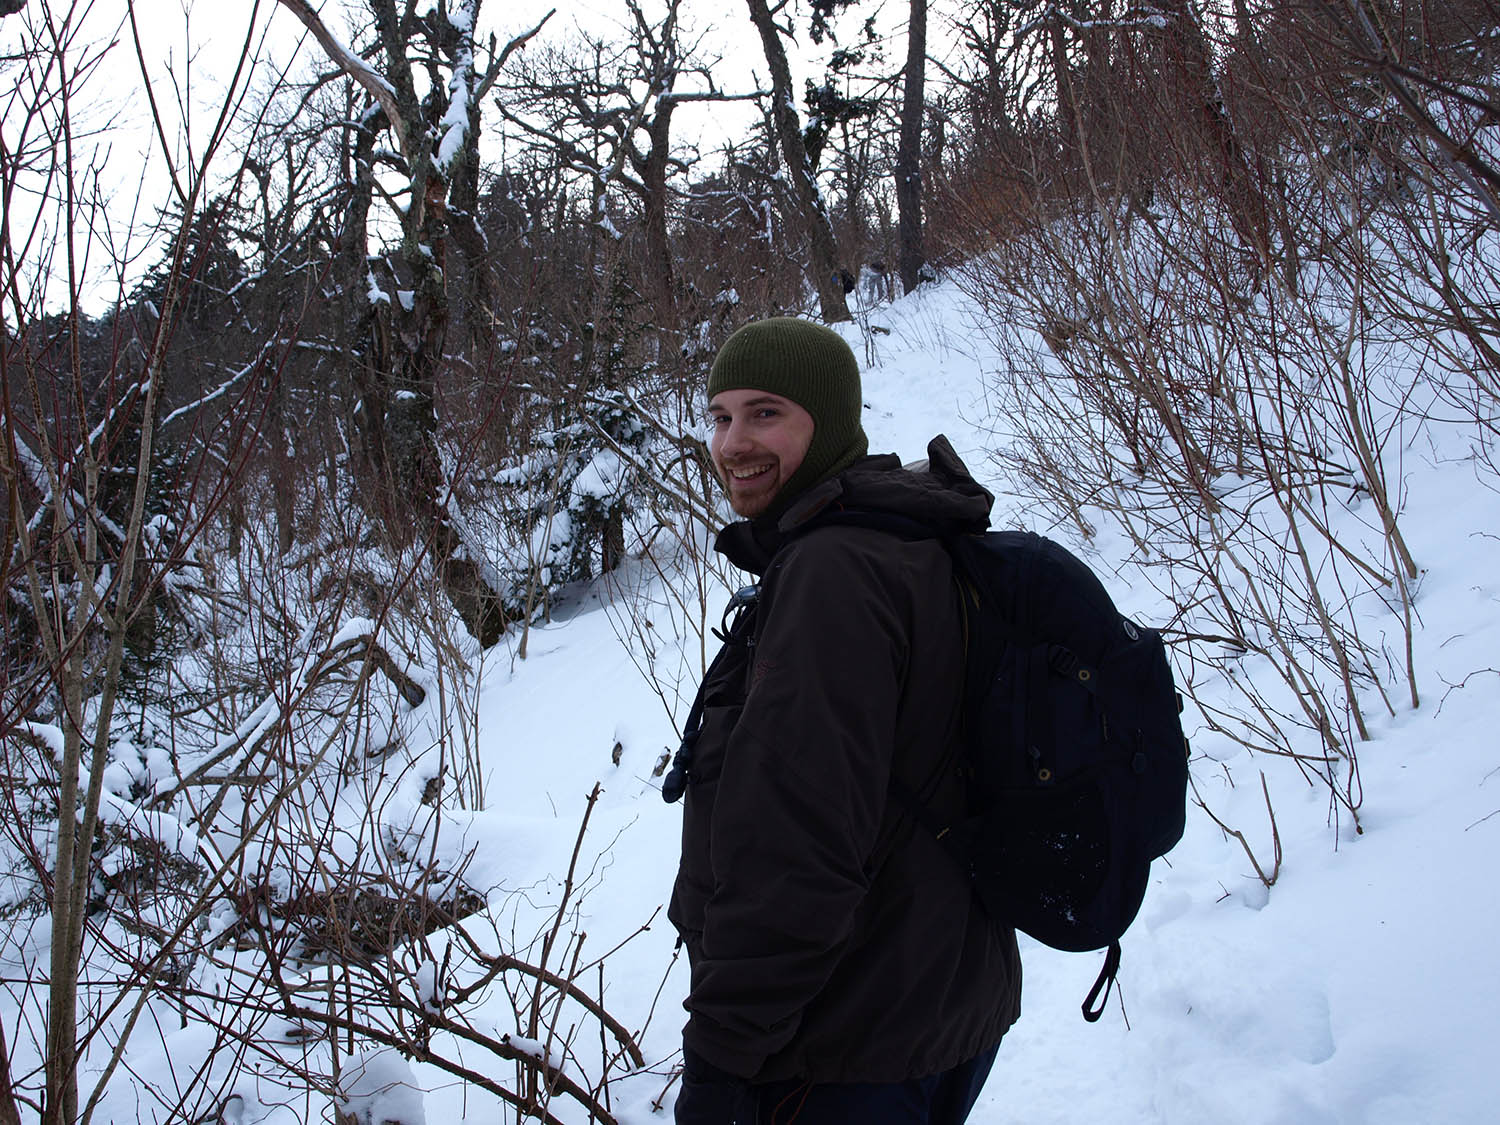 Darian on Becker Hollow Trail